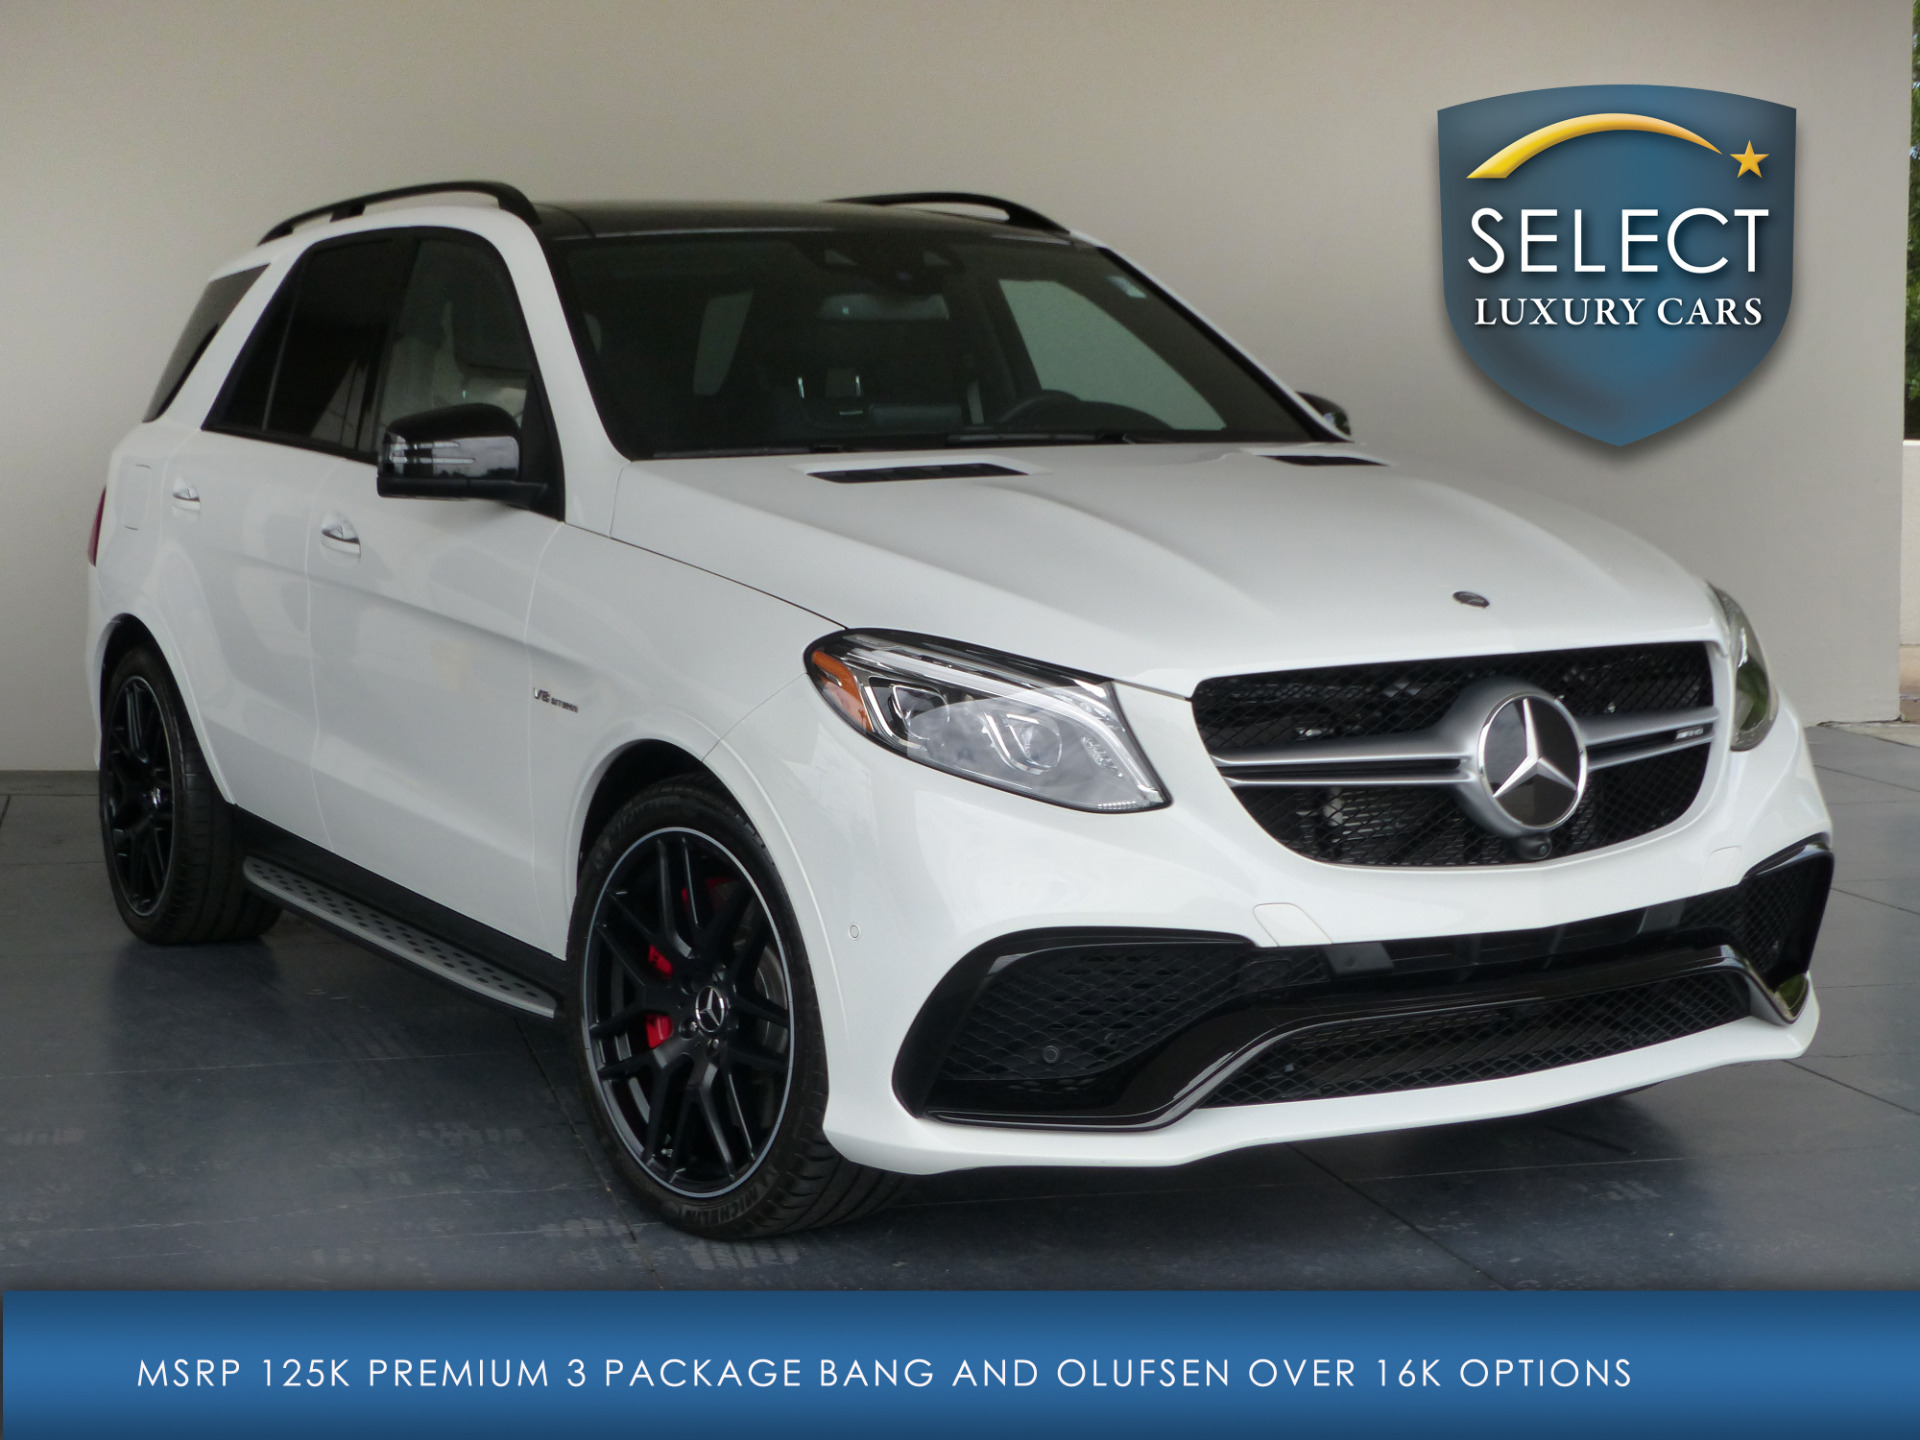 Used 2017 mercedes benz gle 63 s amg marietta ga for Mercedes benz suv used for sale